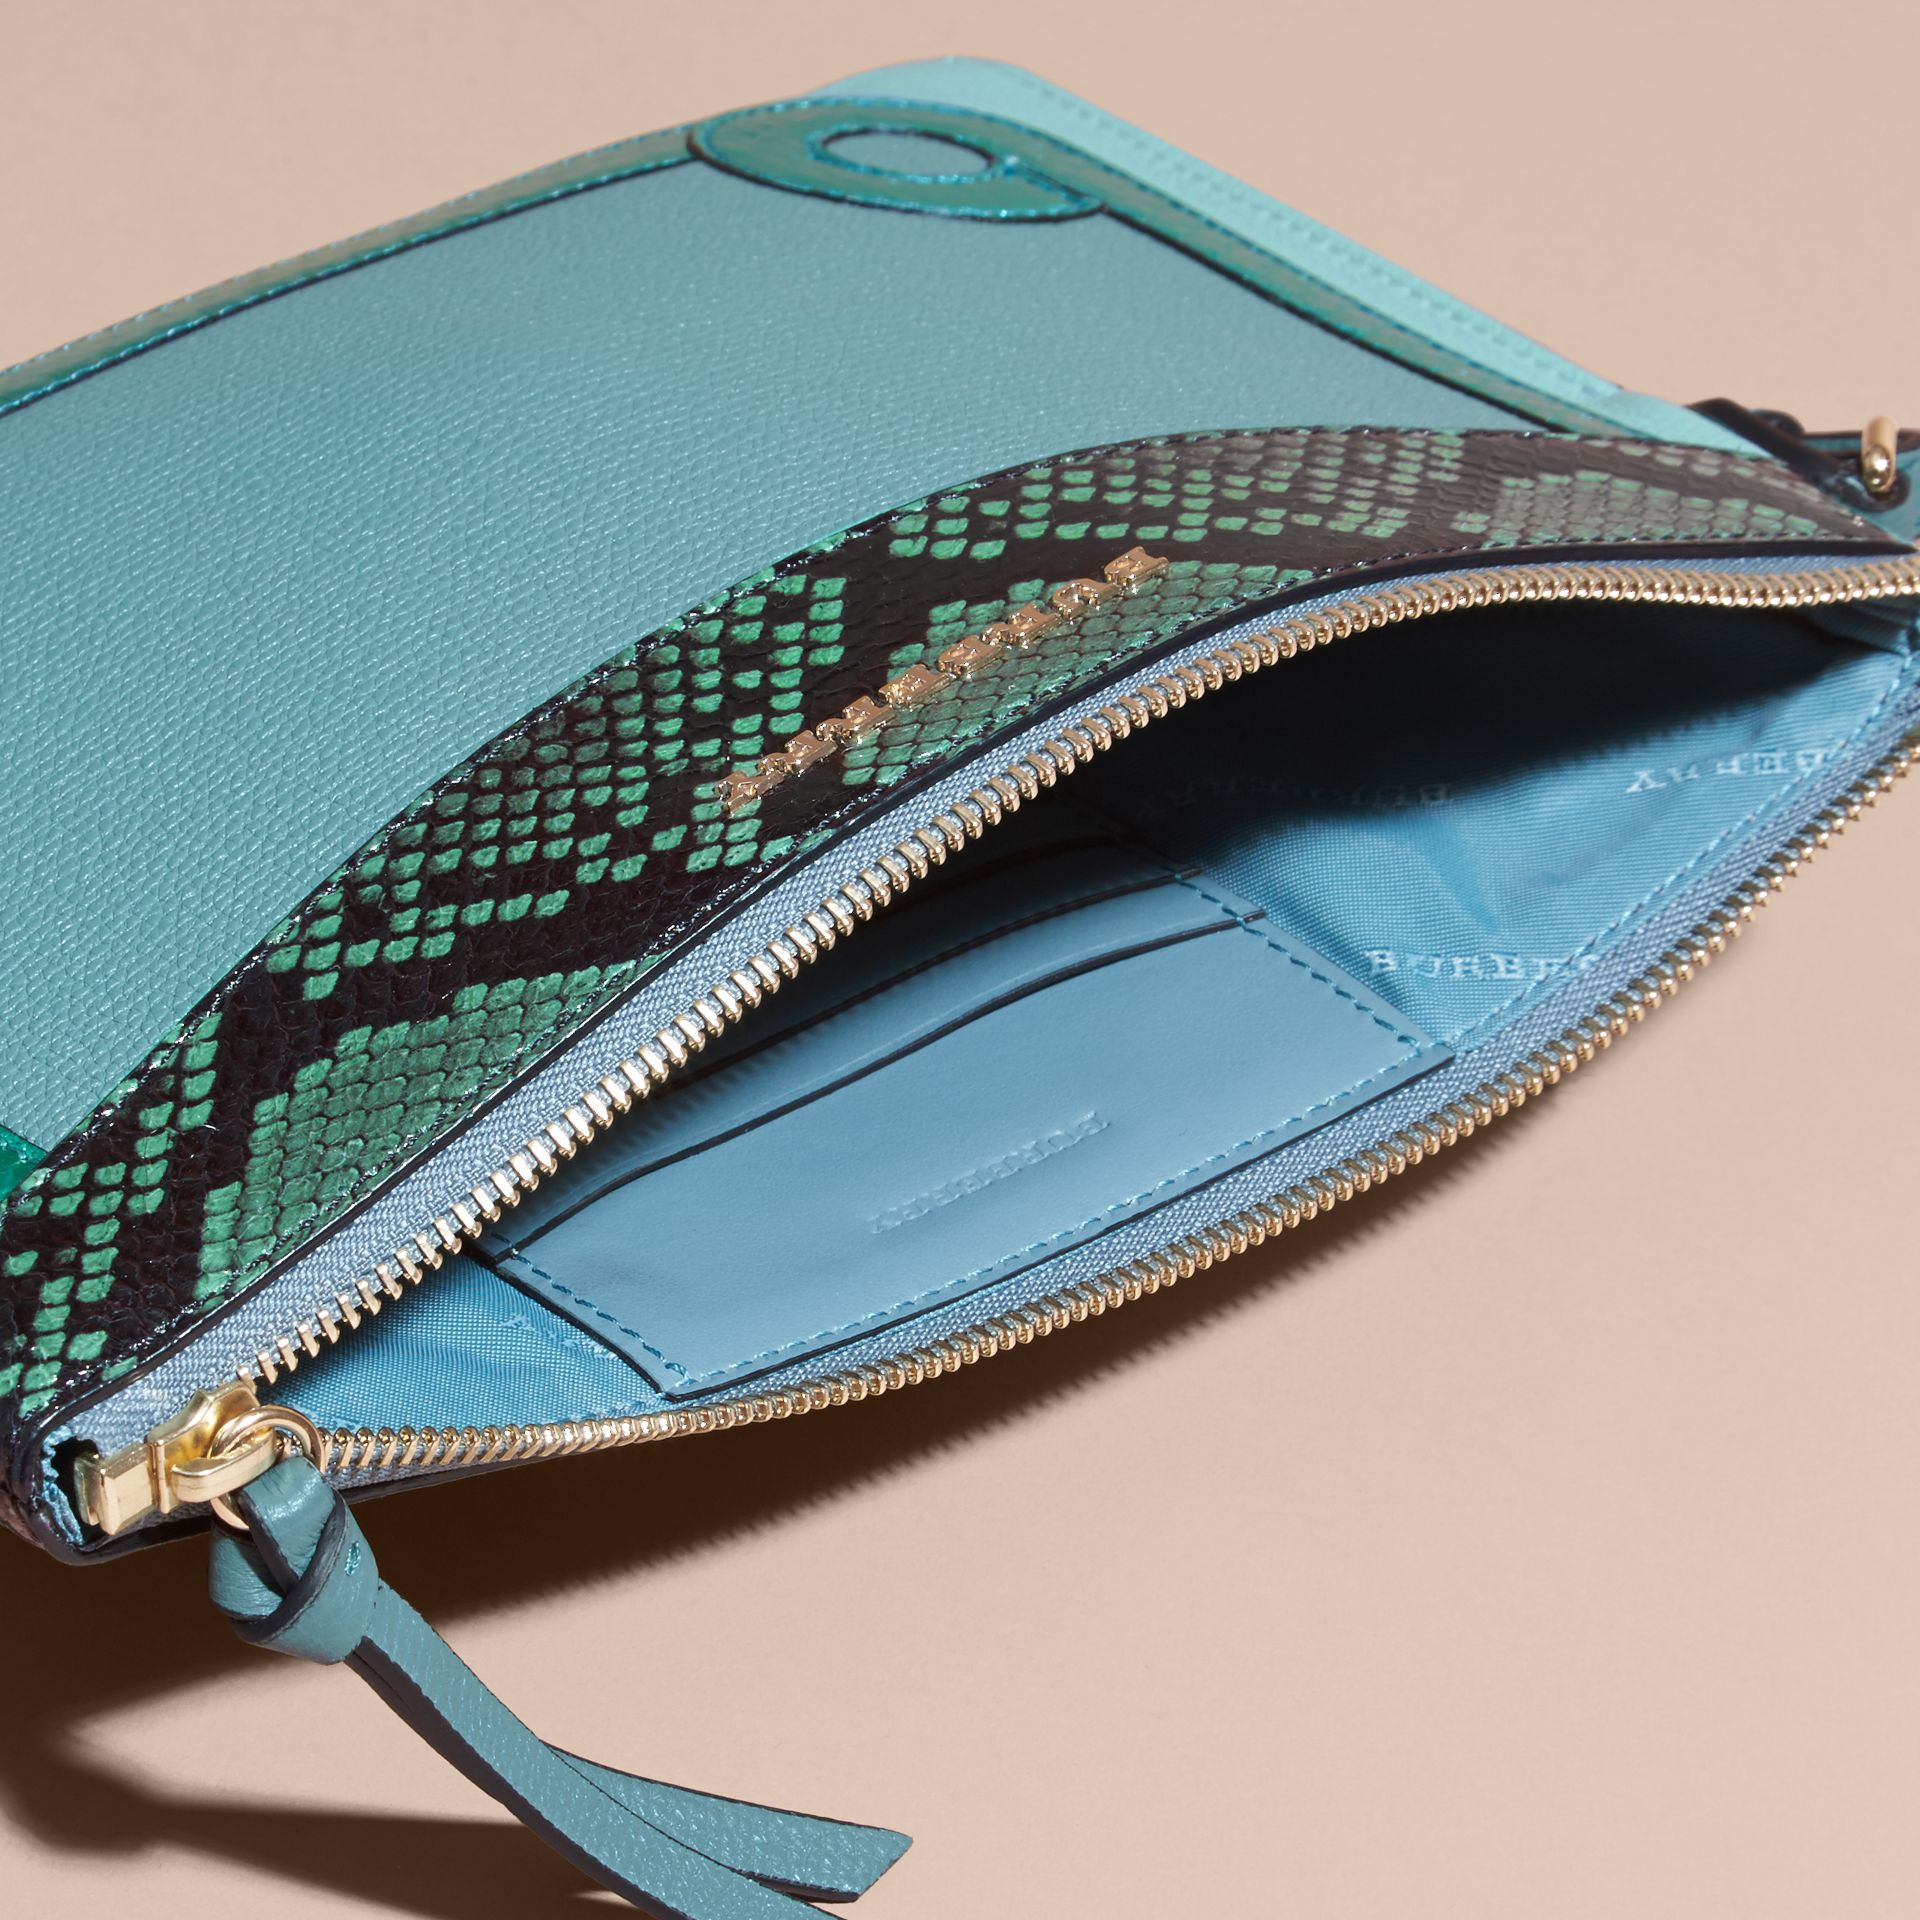 Celadon blue Leather and Snakeskin Clutch Bag Celadon Blue - gallery image 6